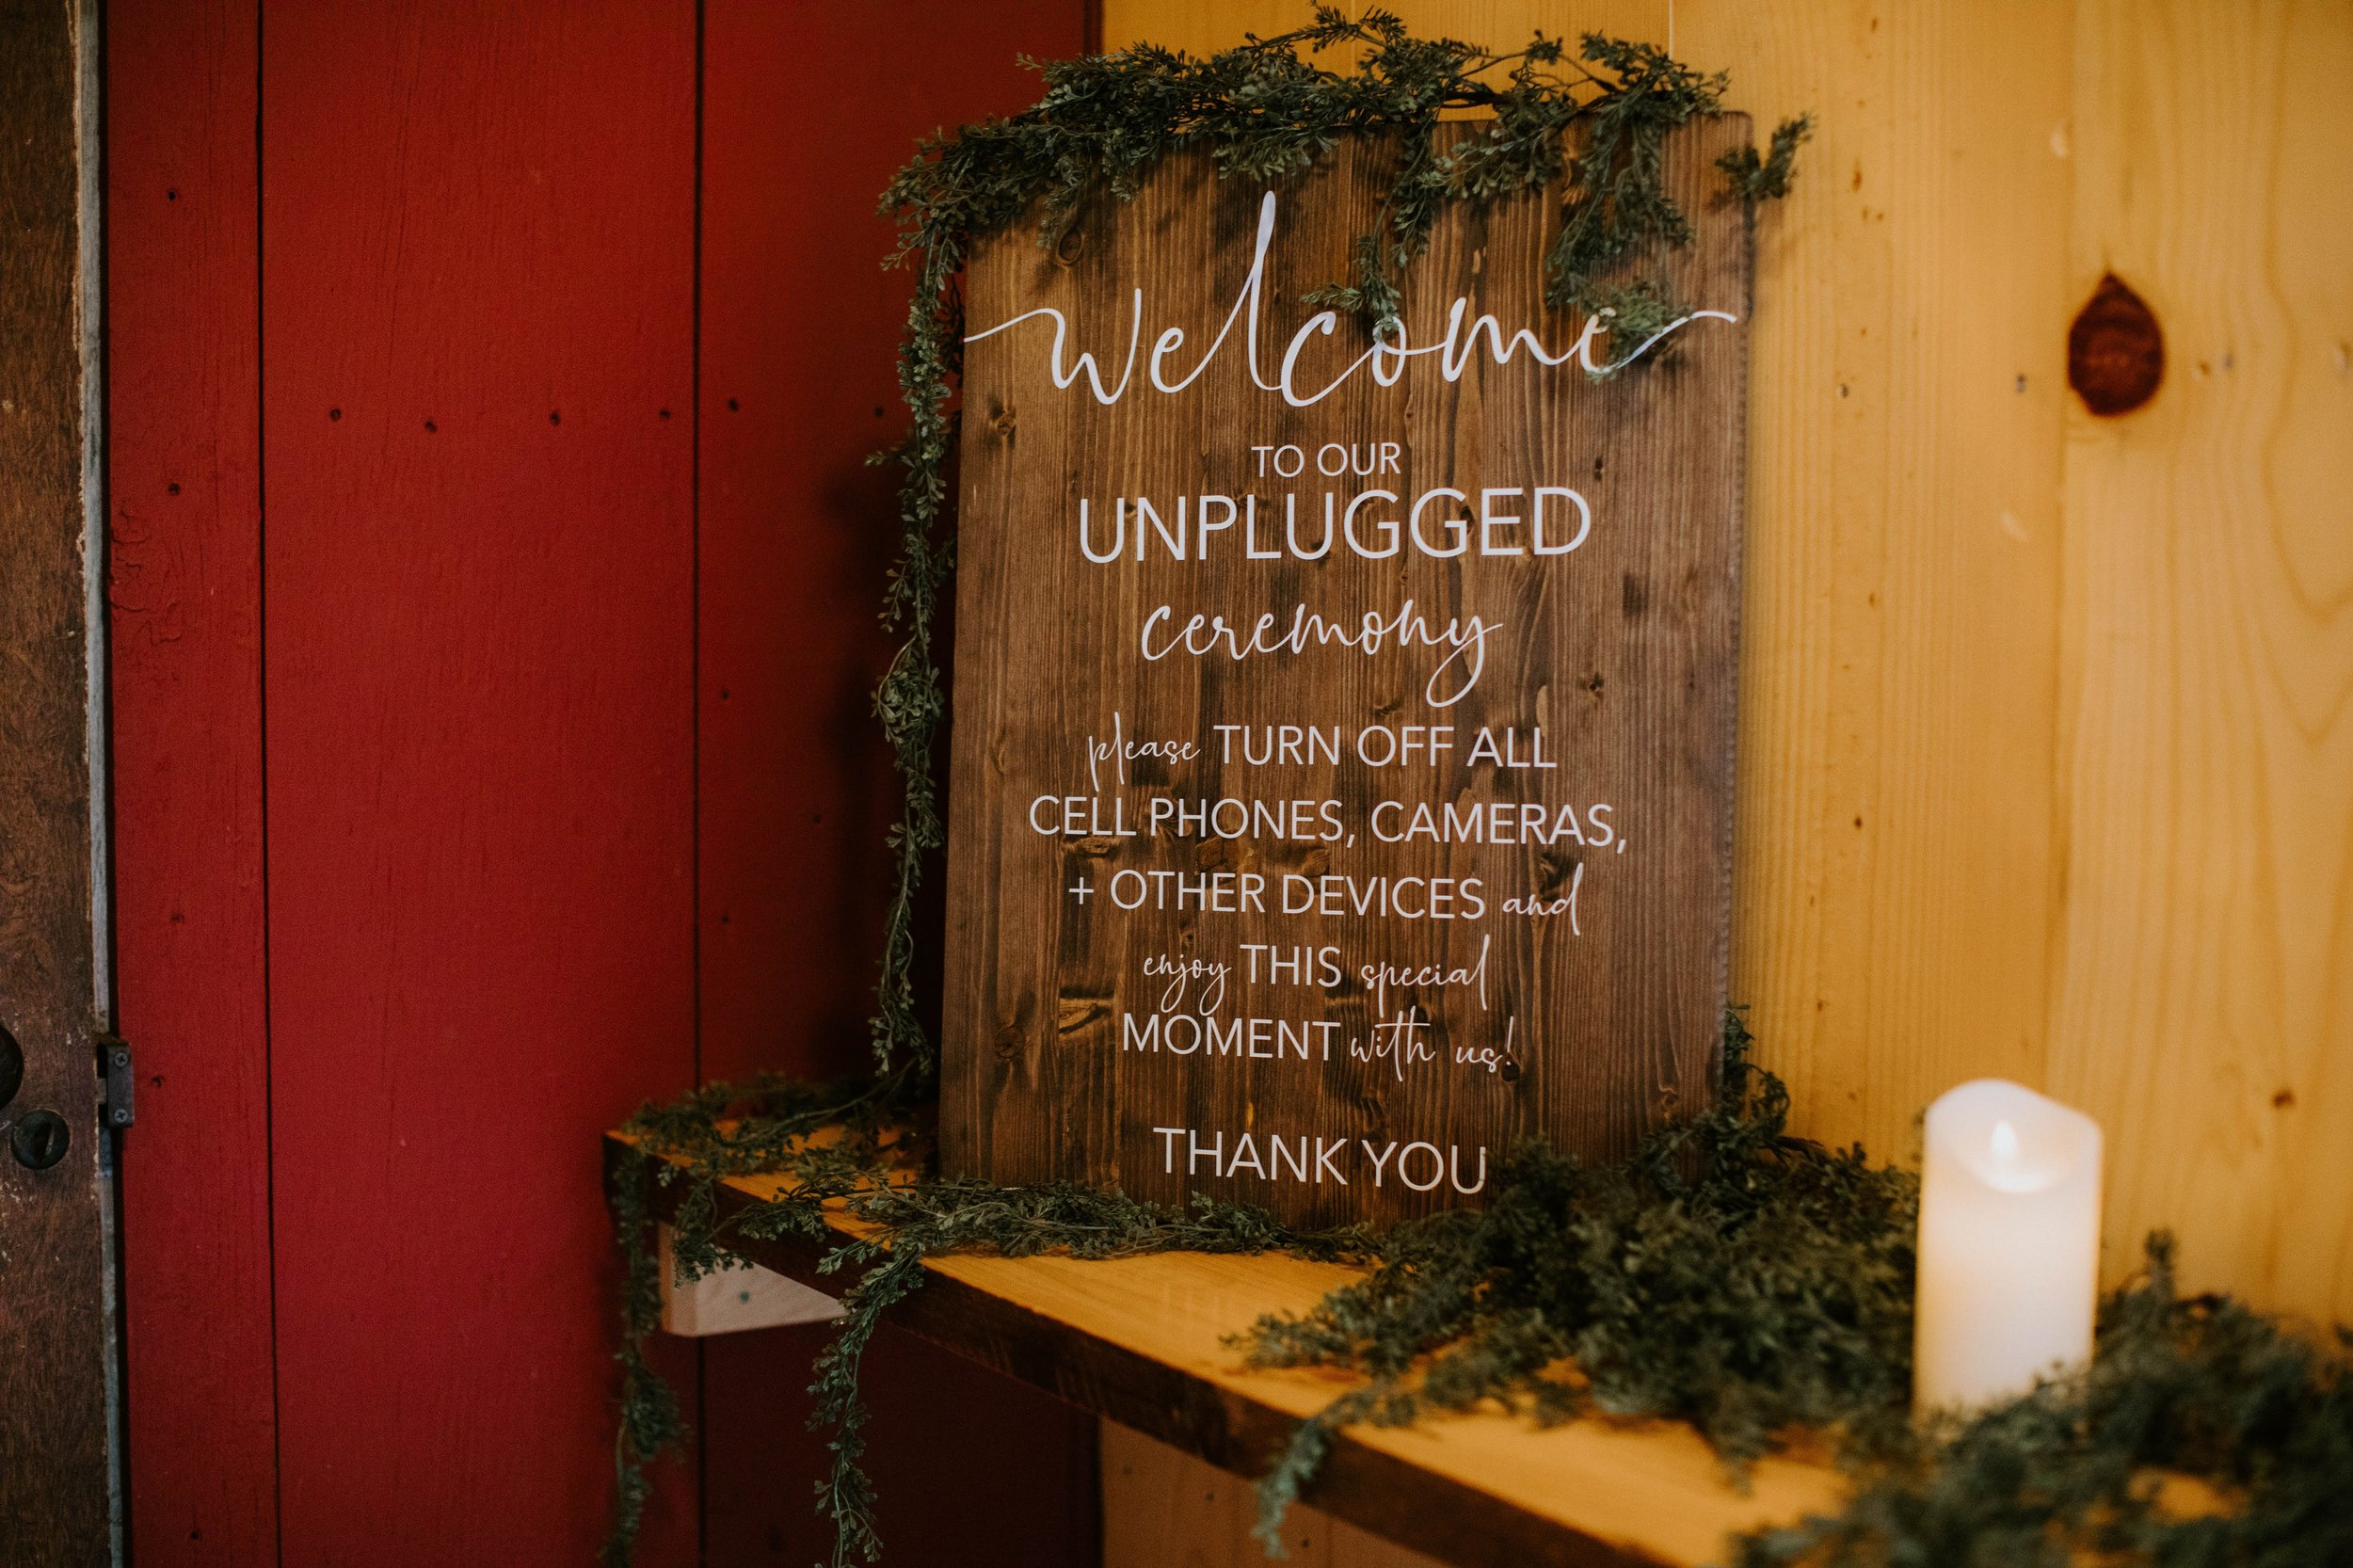 Unplugged wedding ceremony wood sign from a wedding at Lake Orchard Farm Retreat in Sheboygan, Wisconsin - Photo by Kaley Rae Photography.jpg